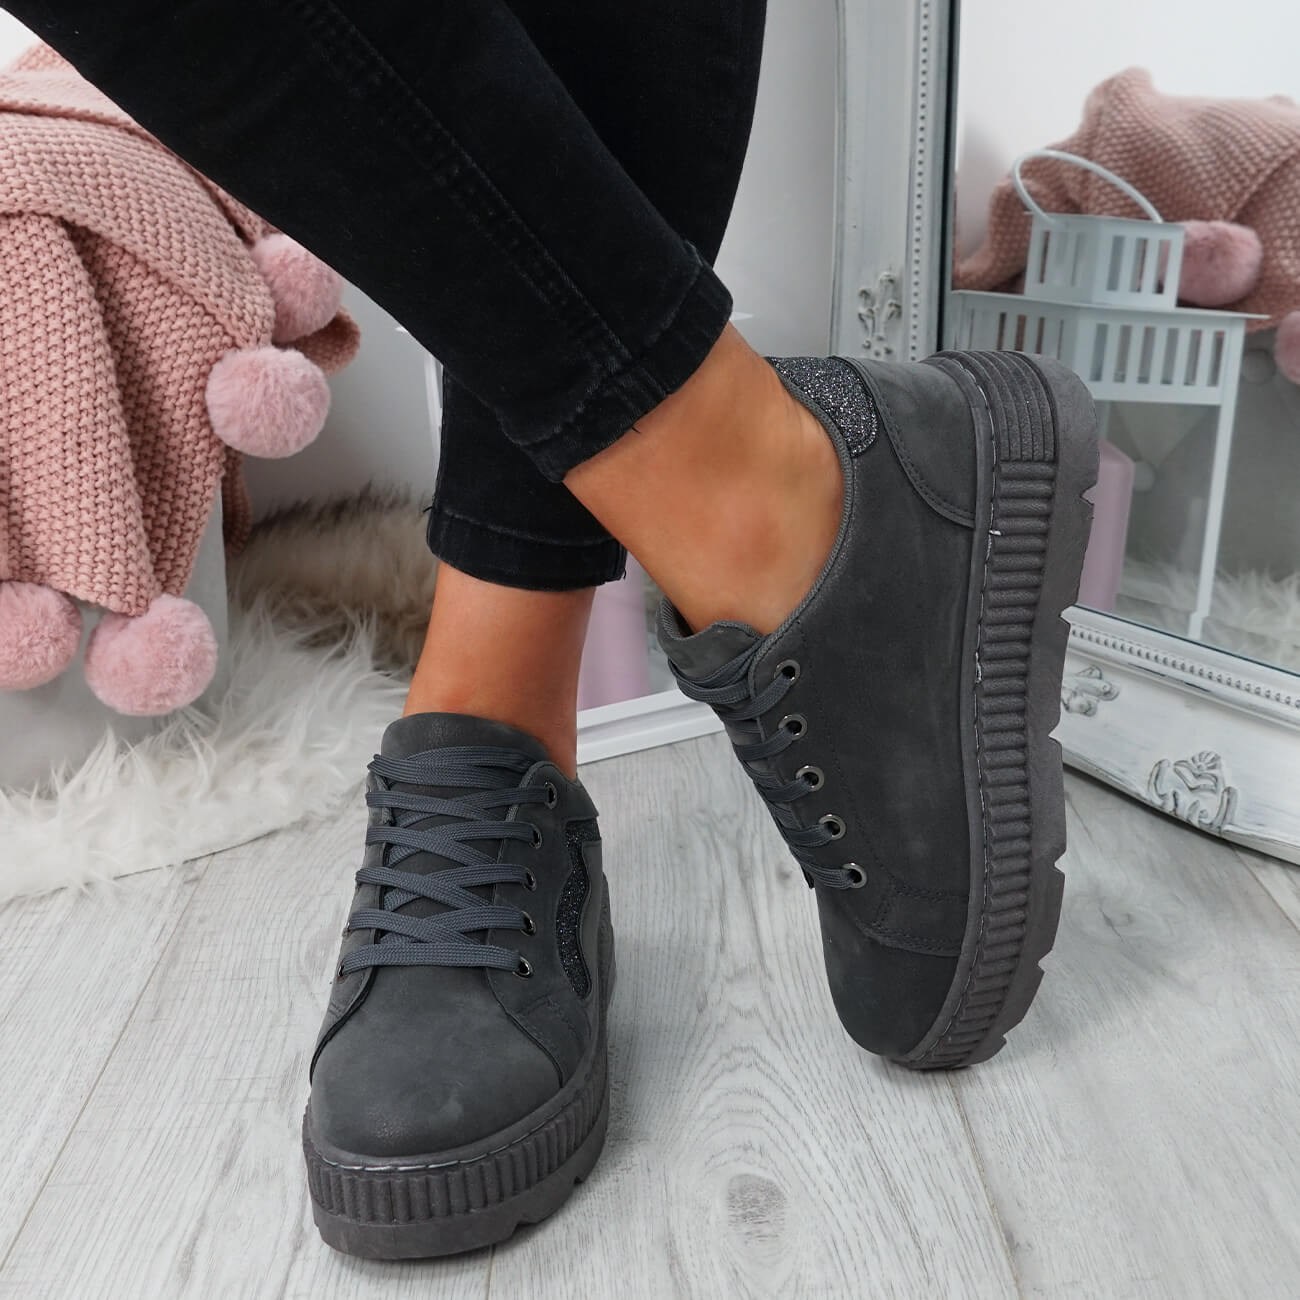 WOMENS-LADIES-LACE-UP-PLATFORM-TRAINERS-PLIMSOLL-SKATE-SNEAKERS-SHOES-SIZE thumbnail 20